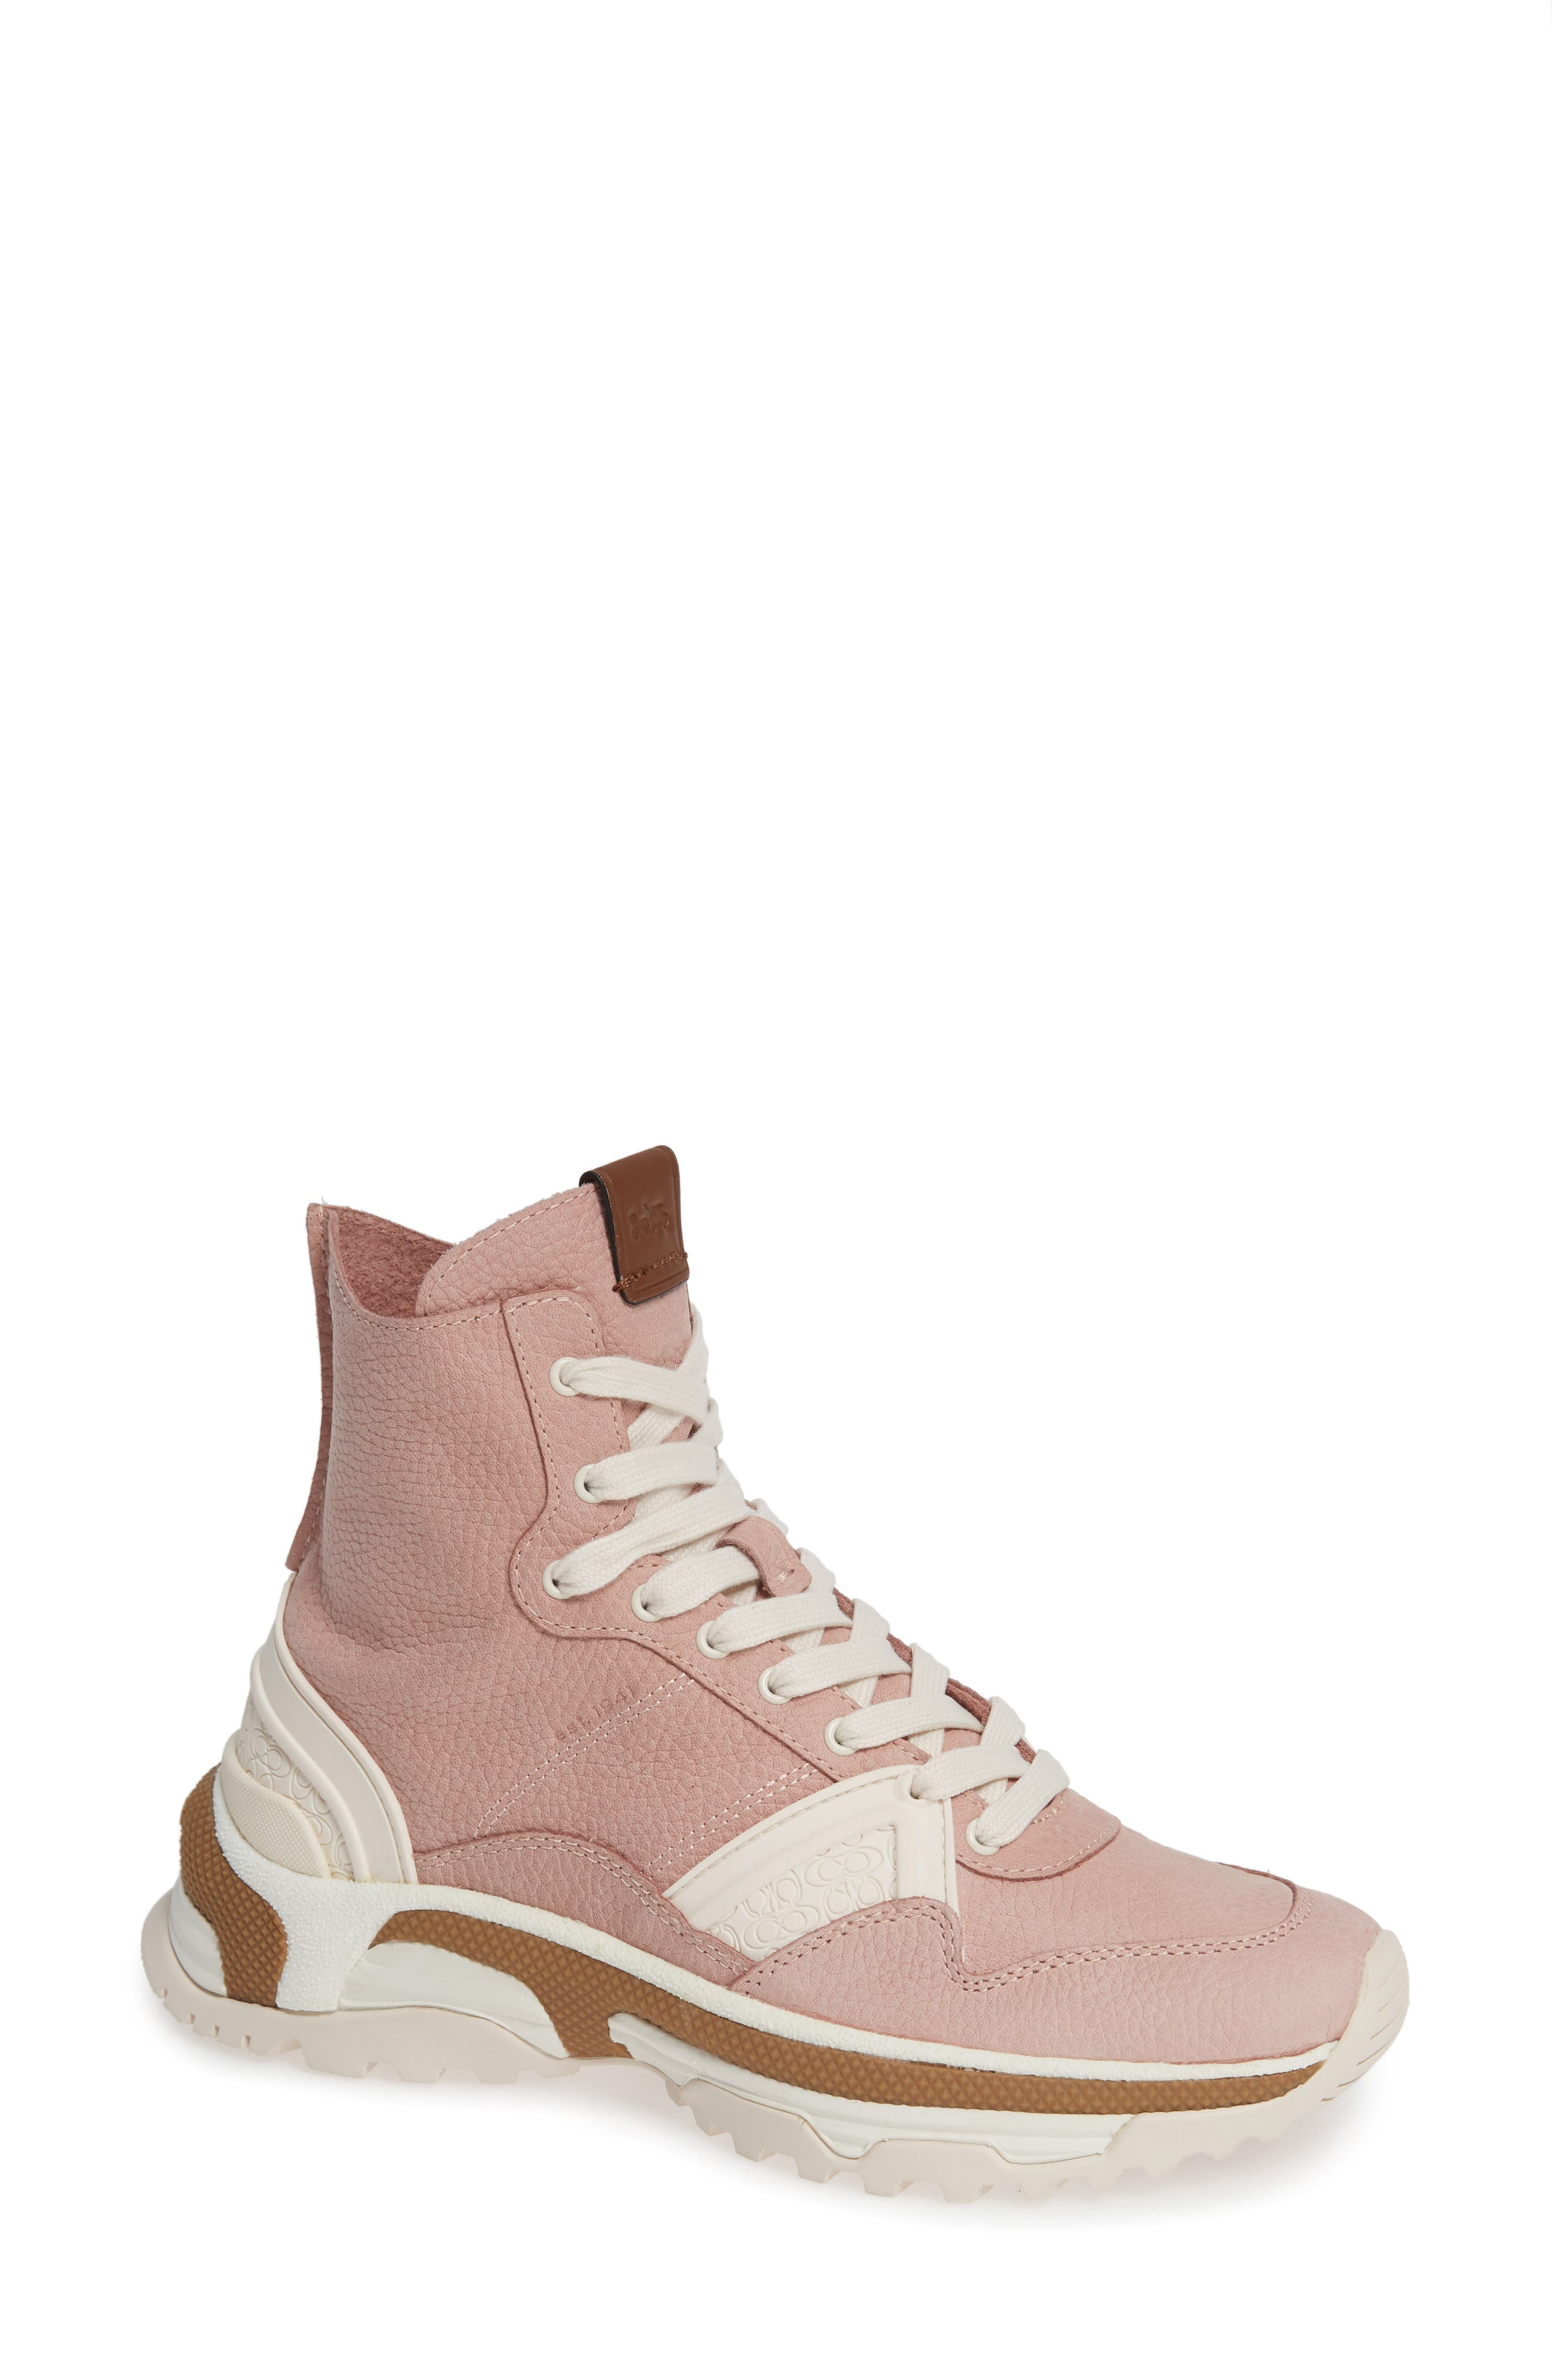 COACH,                             High Top Sneaker,                             Main thumbnail 1, color,                             BLUSH PINK NUBUCK LEATHER